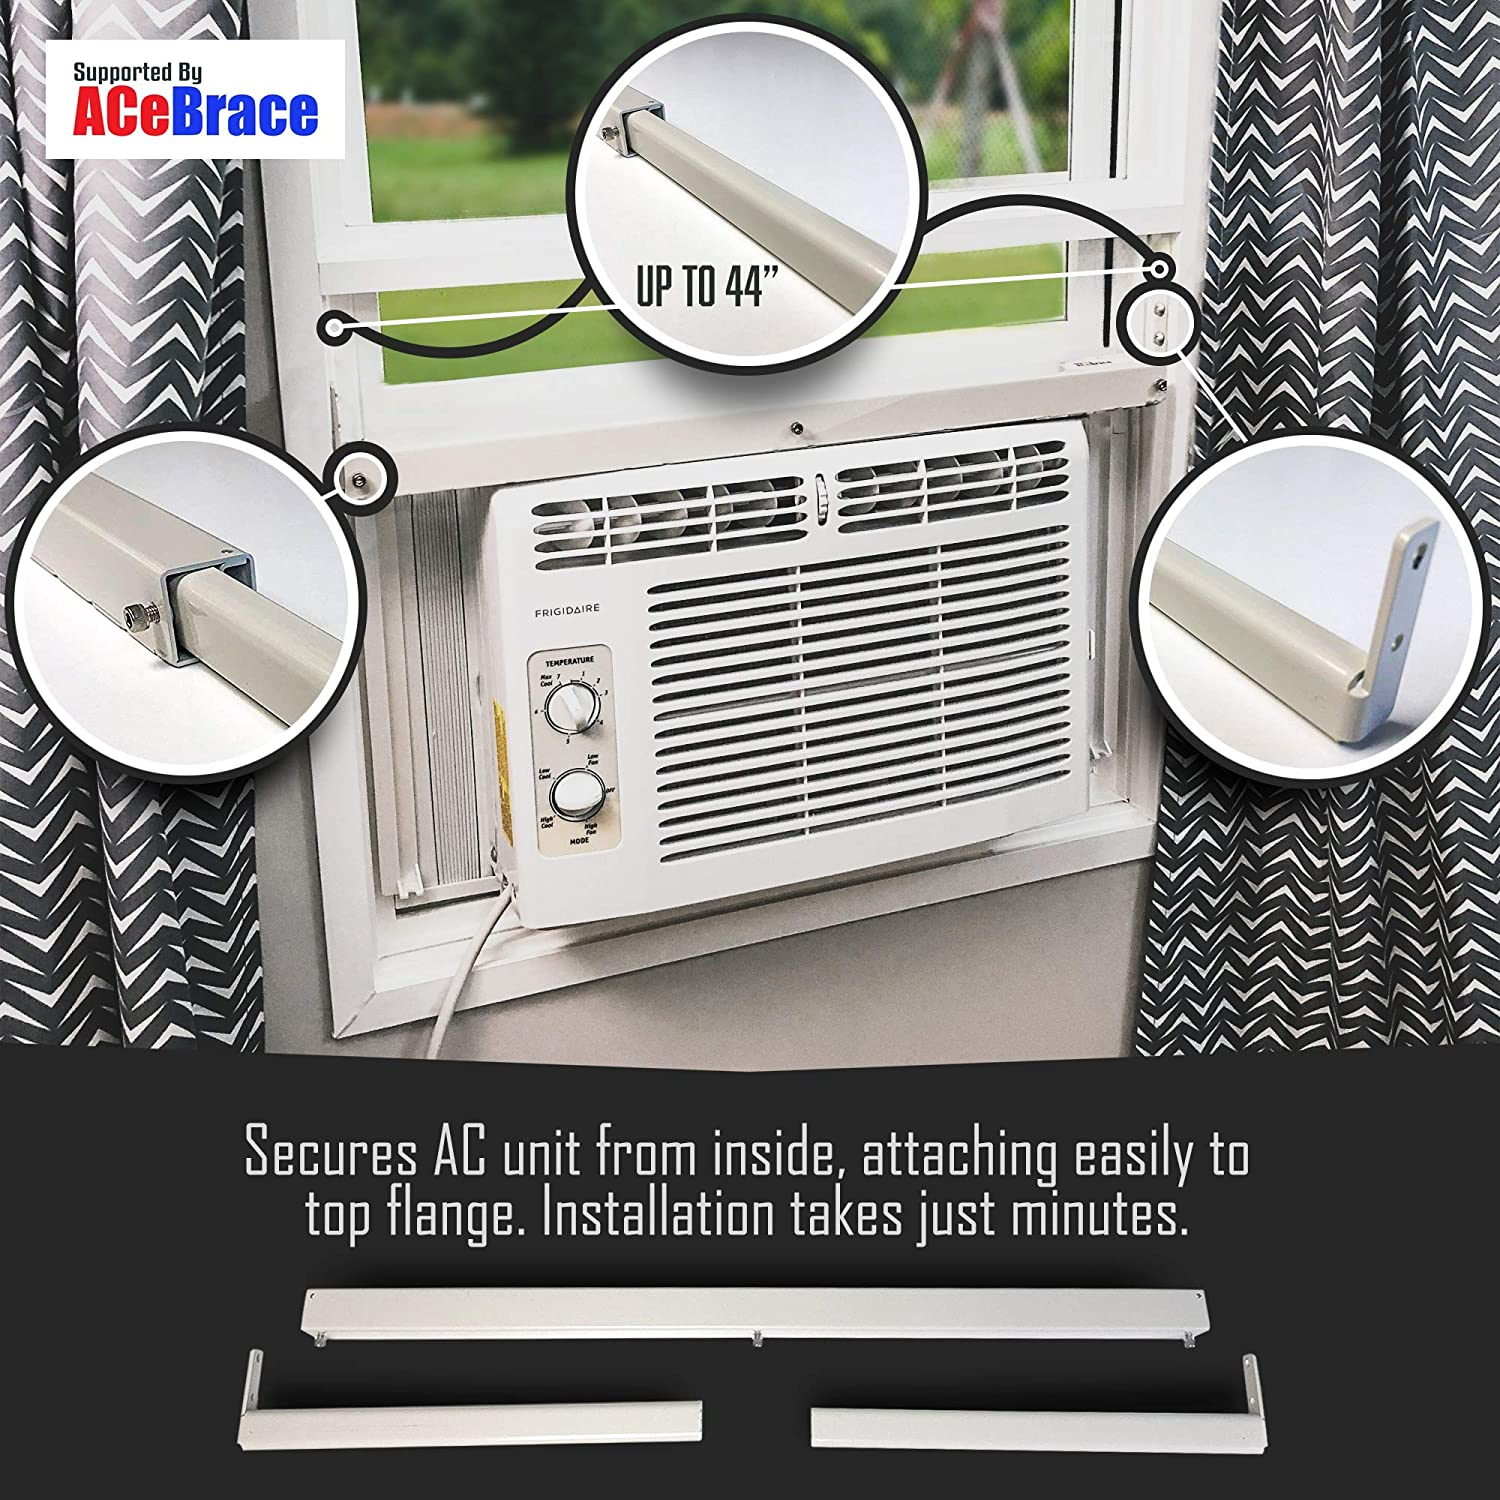 AceBrace Air Conditioner Support for Standard Window Air Conditioners - Universal AC Window Bracket- Air Conditioner Support - Window Guard and Air Conditioner Support